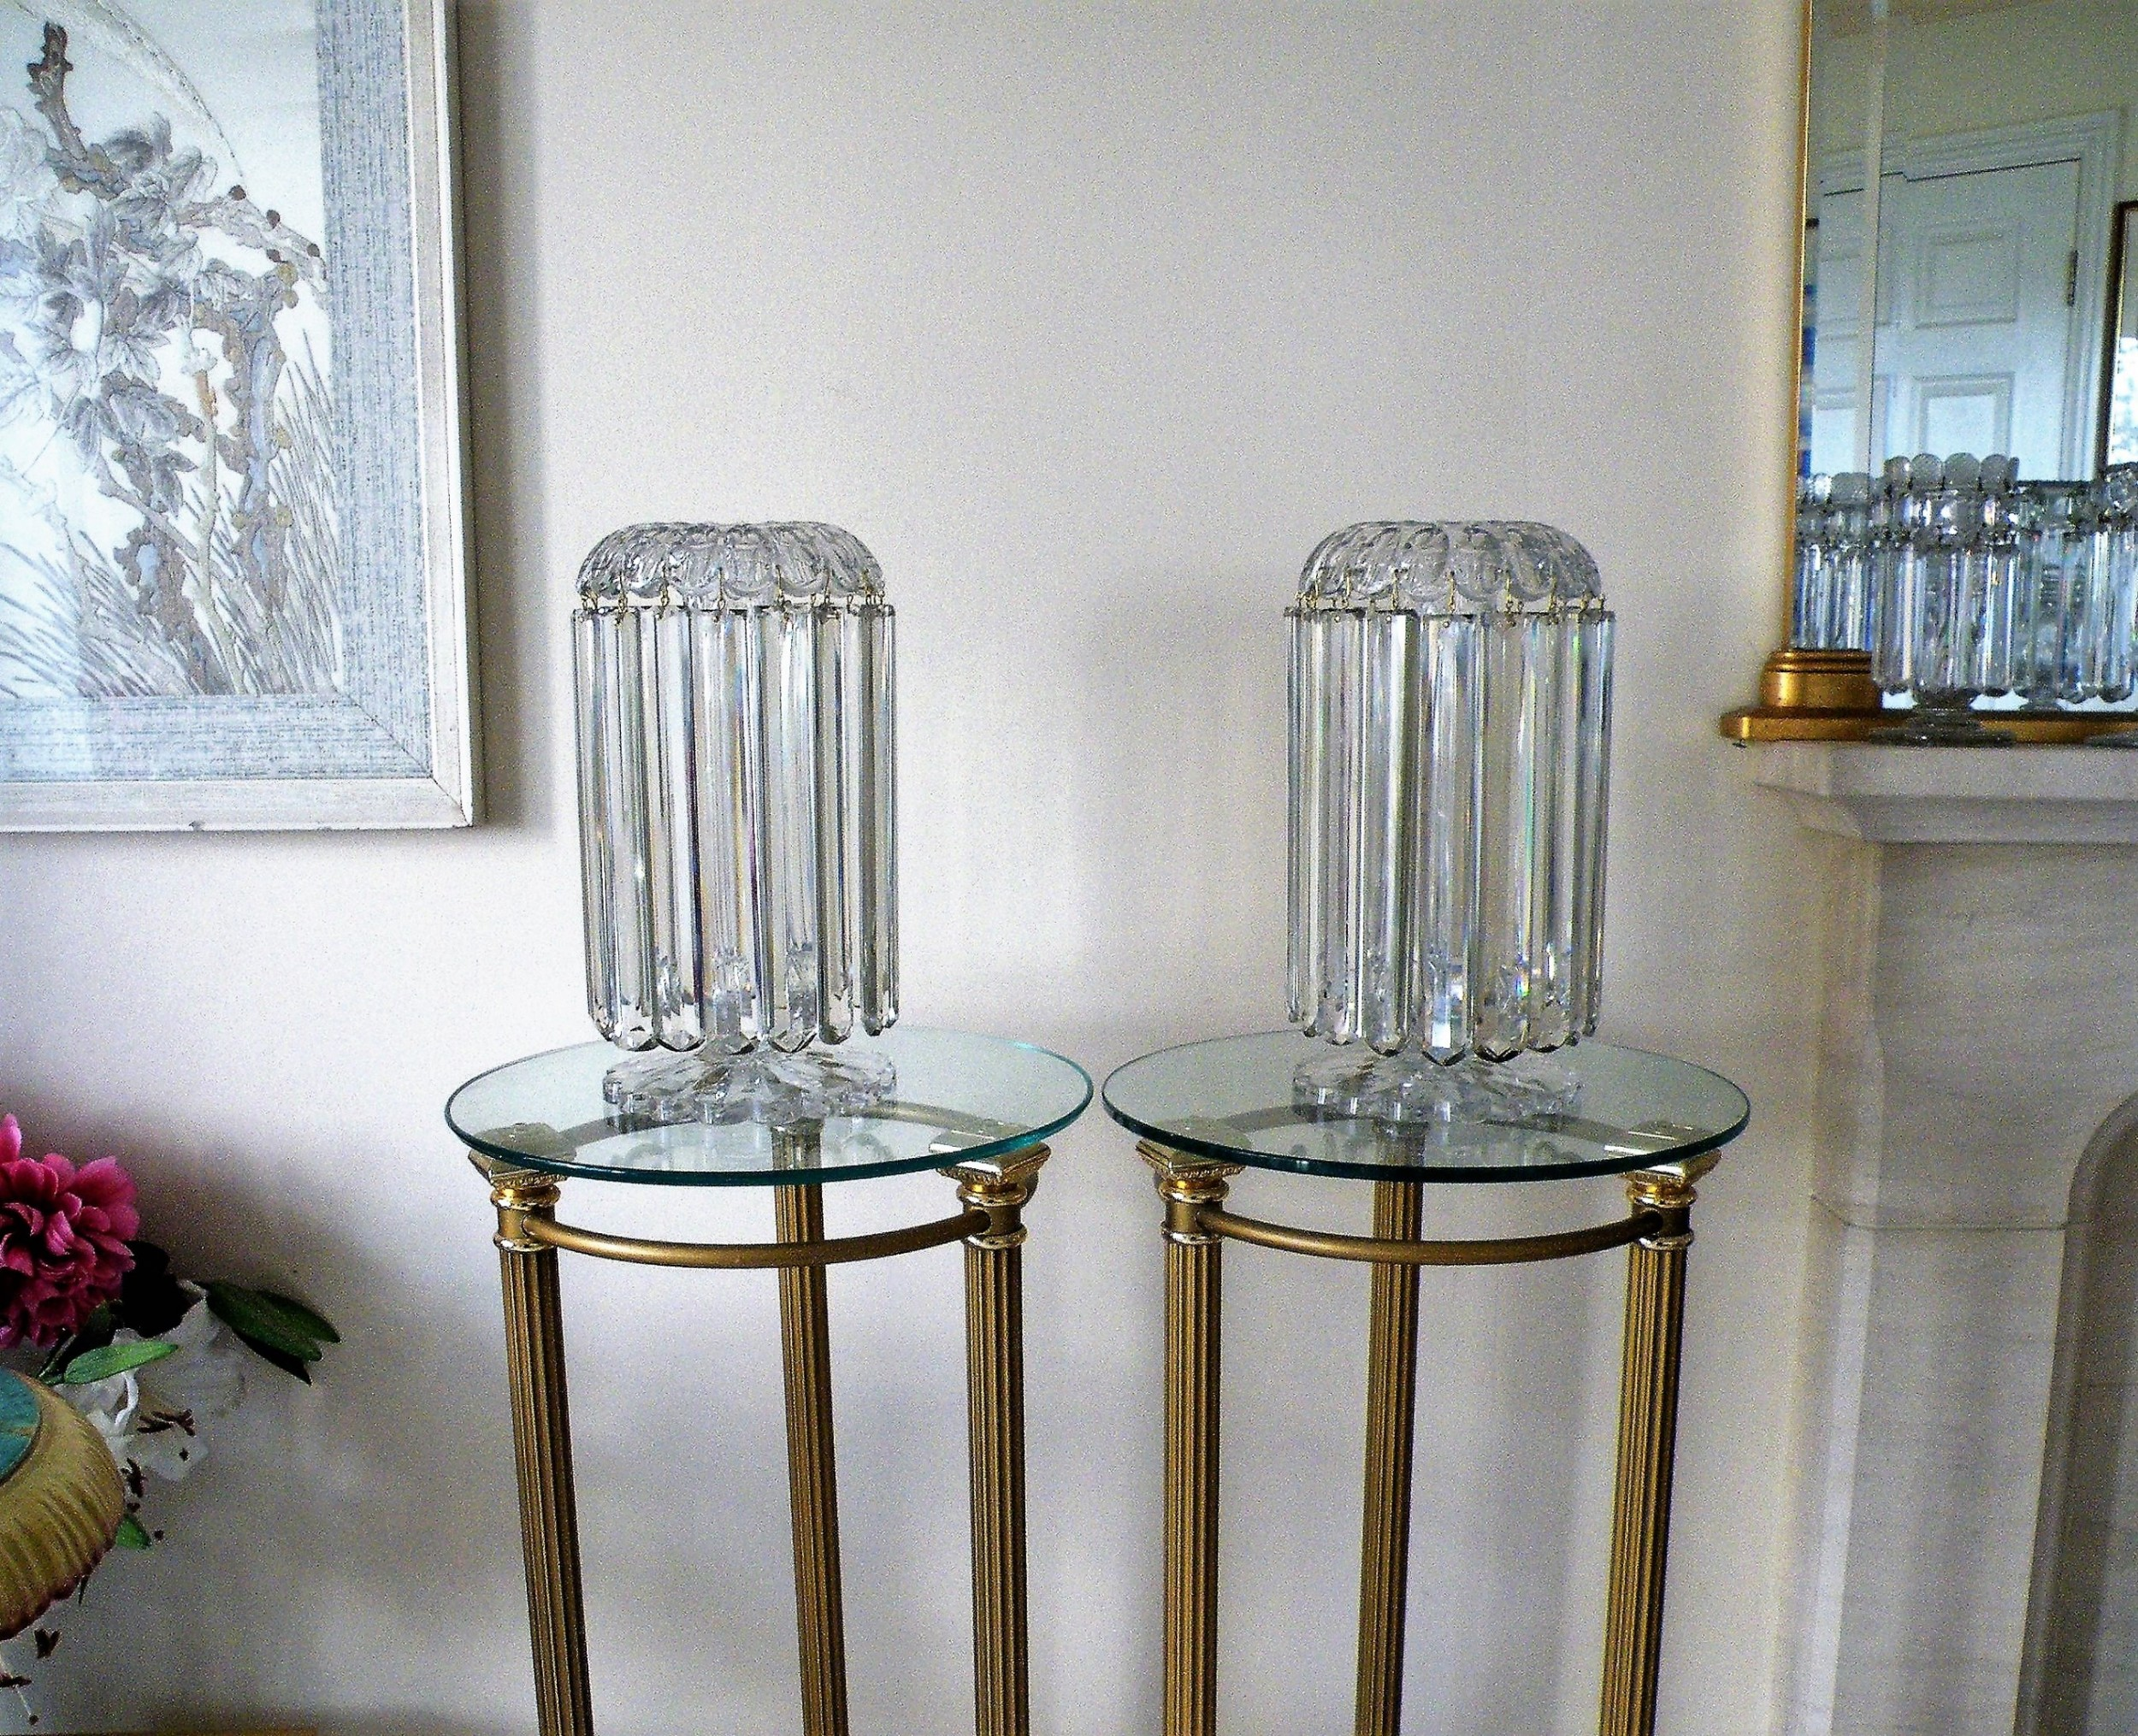 a rare and important large pair of regency cut glass lusters by john blades of london